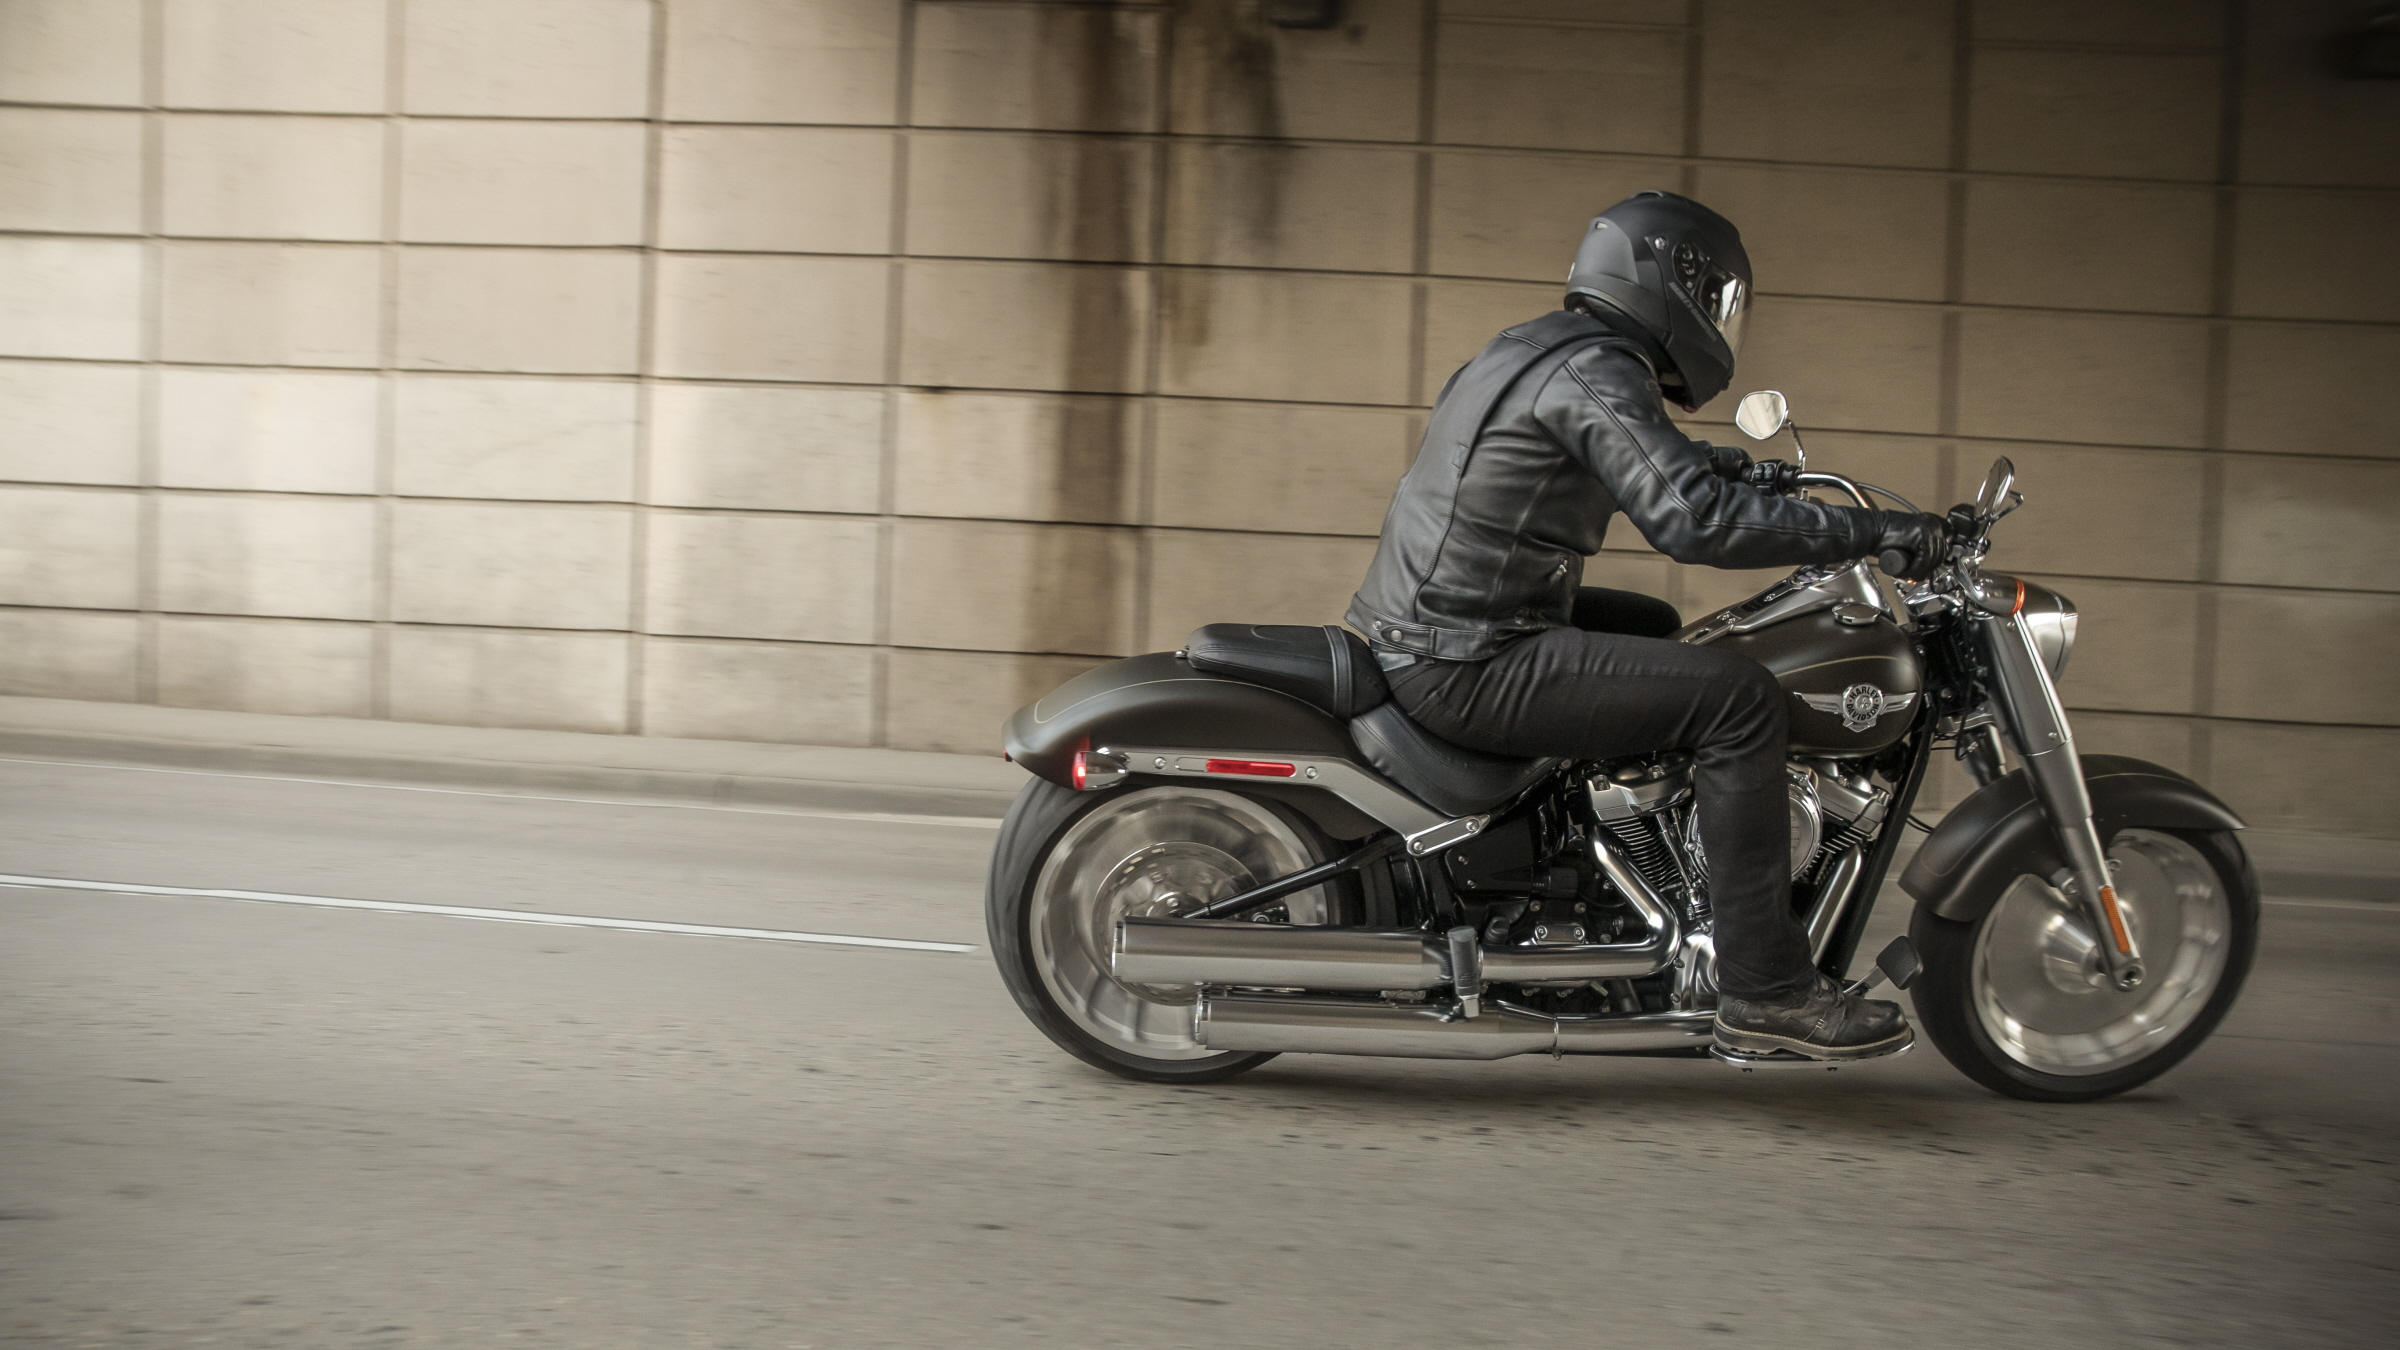 2018 - 2019 Harley-Davidson Fat Boy | Top Speed